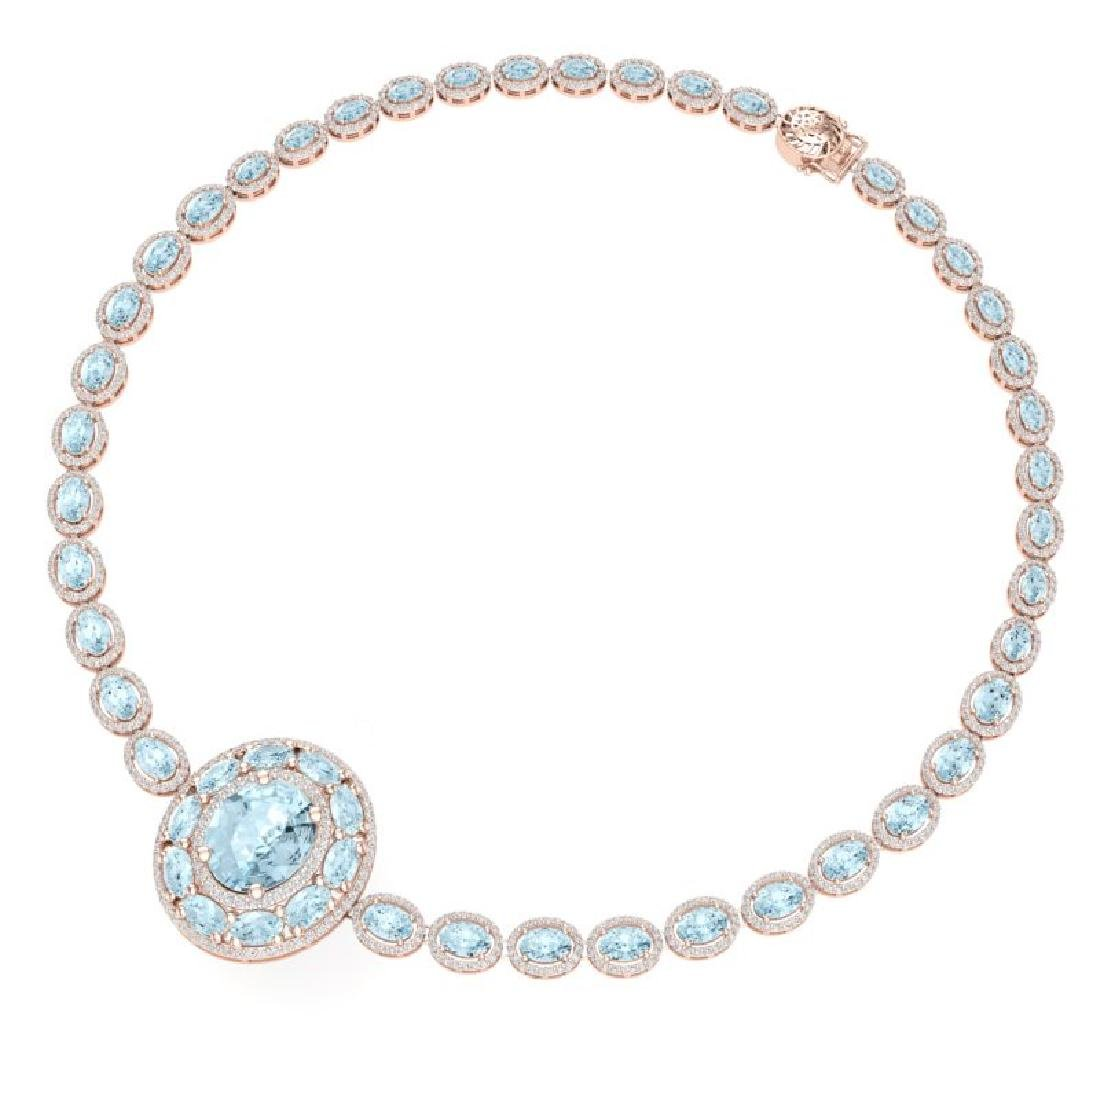 45.12 CTW Royalty Sky Topaz & VS Diamond Necklace 18K - 3